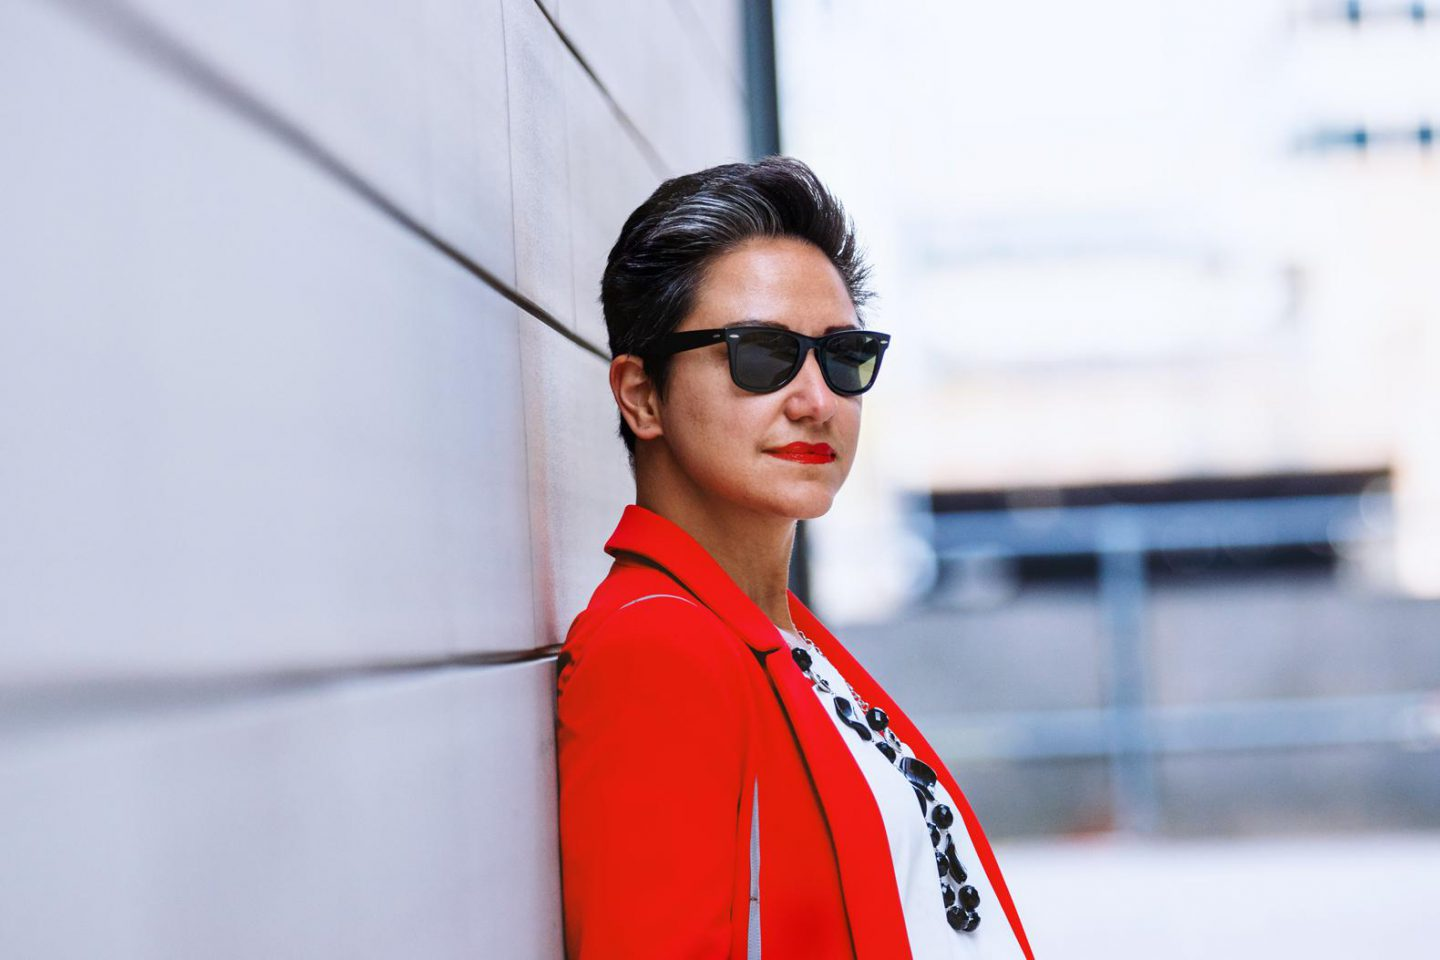 Channeling Hillary Clinton meets Miami Vice in a power red blazer